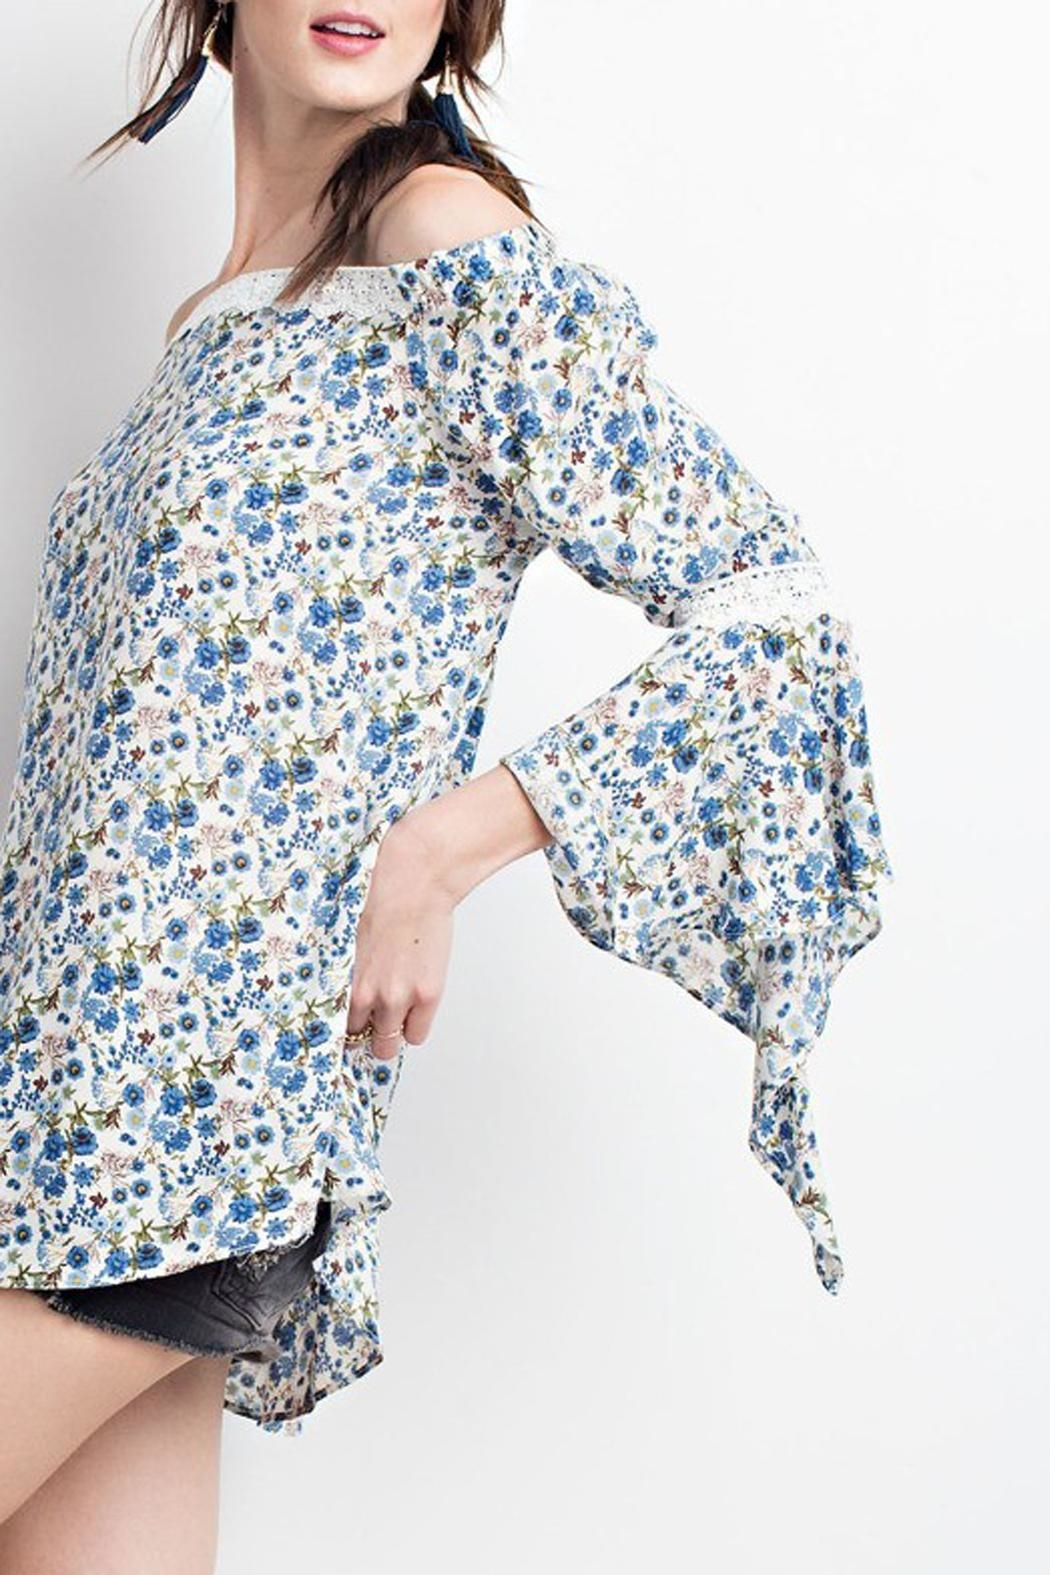 easel Blue-Floral-Print Off-Shoulder Blouse - Front Cropped Image